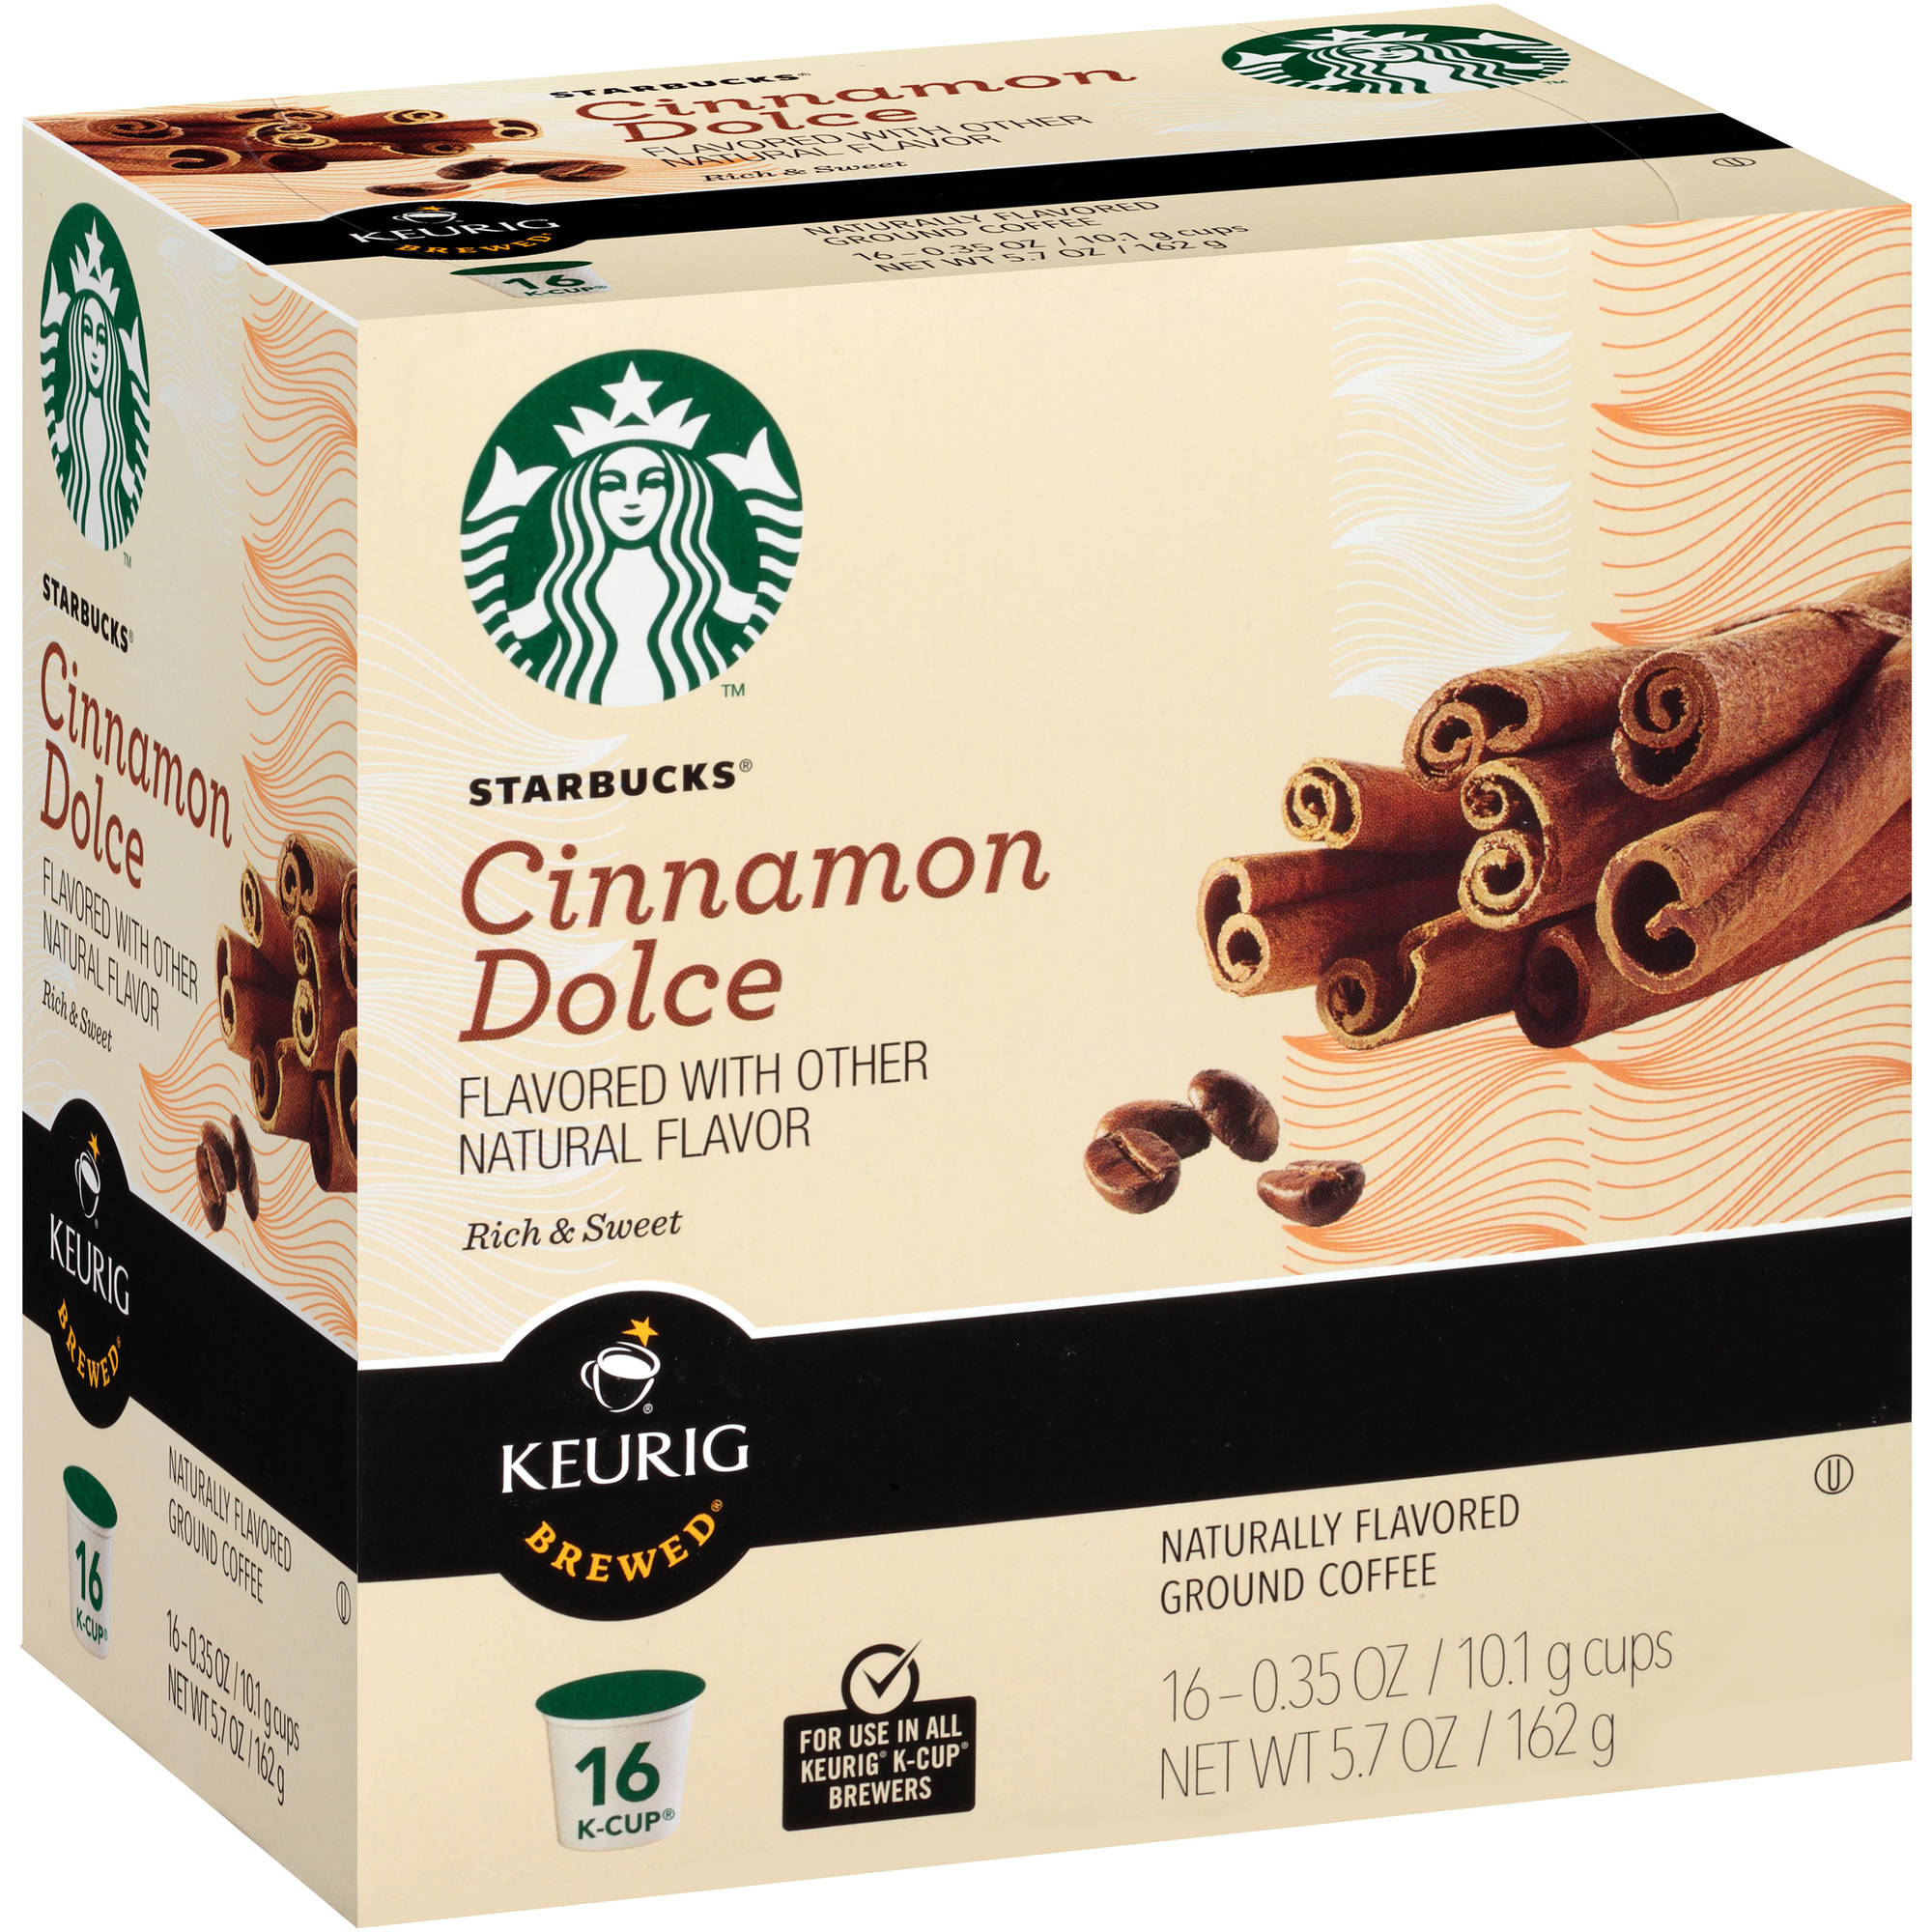 Starbucks Cinnamon Dolce Ground Coffee K-Cup, 0.35 oz, 16 count